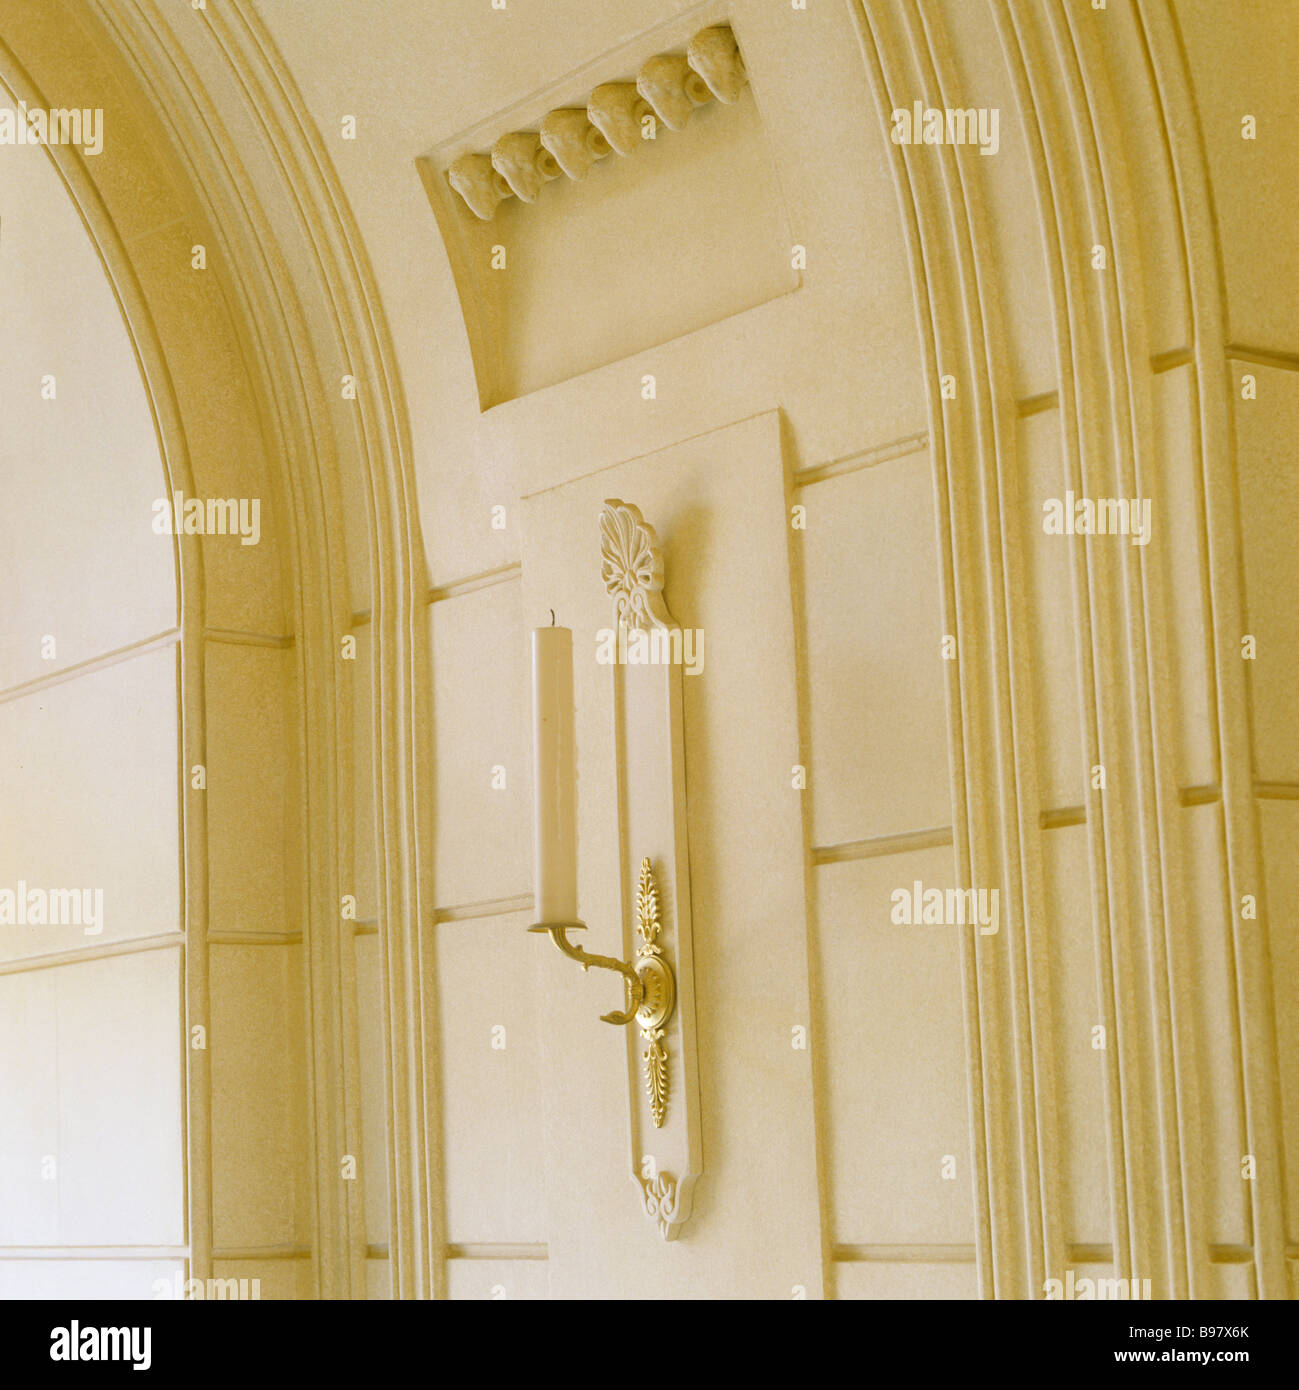 Moulding Wall Stock Photos & Moulding Wall Stock Images - Alamy